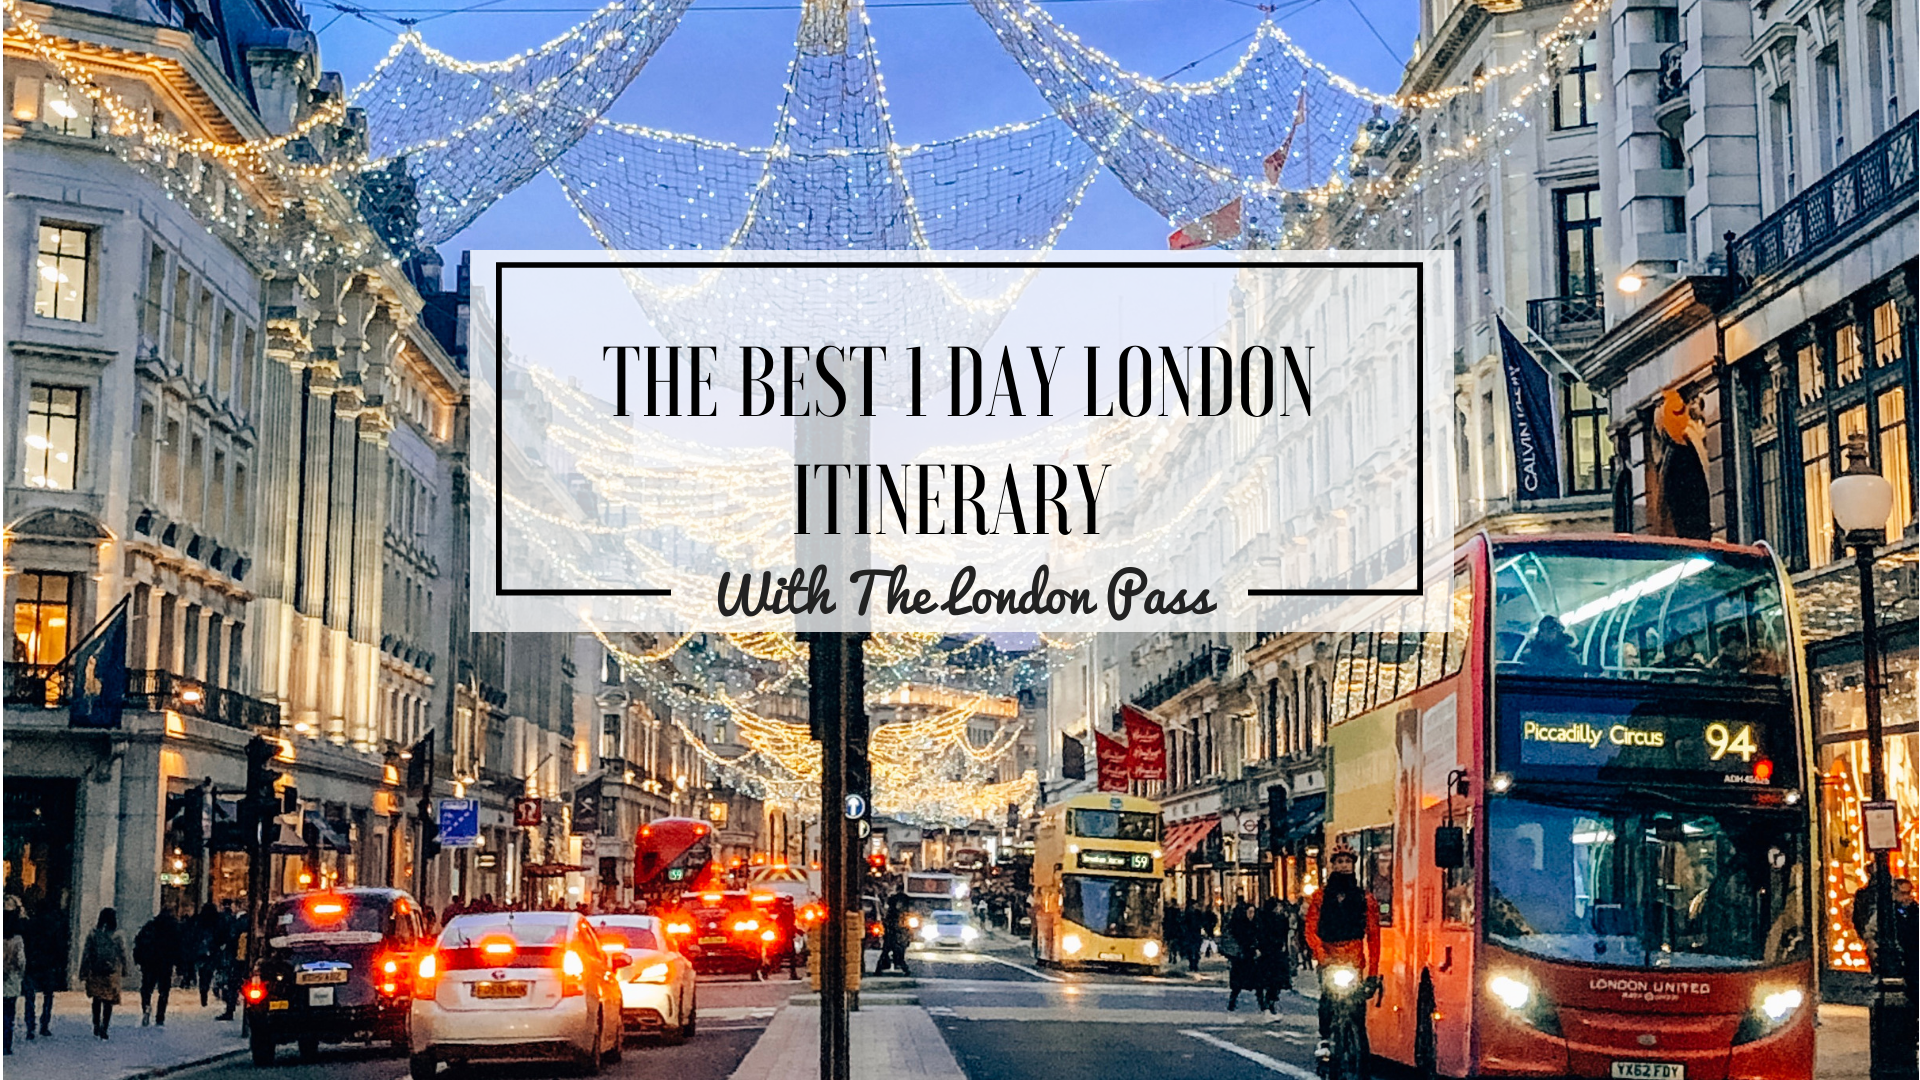 The Best 1 Day London Itinerary With The London Pass